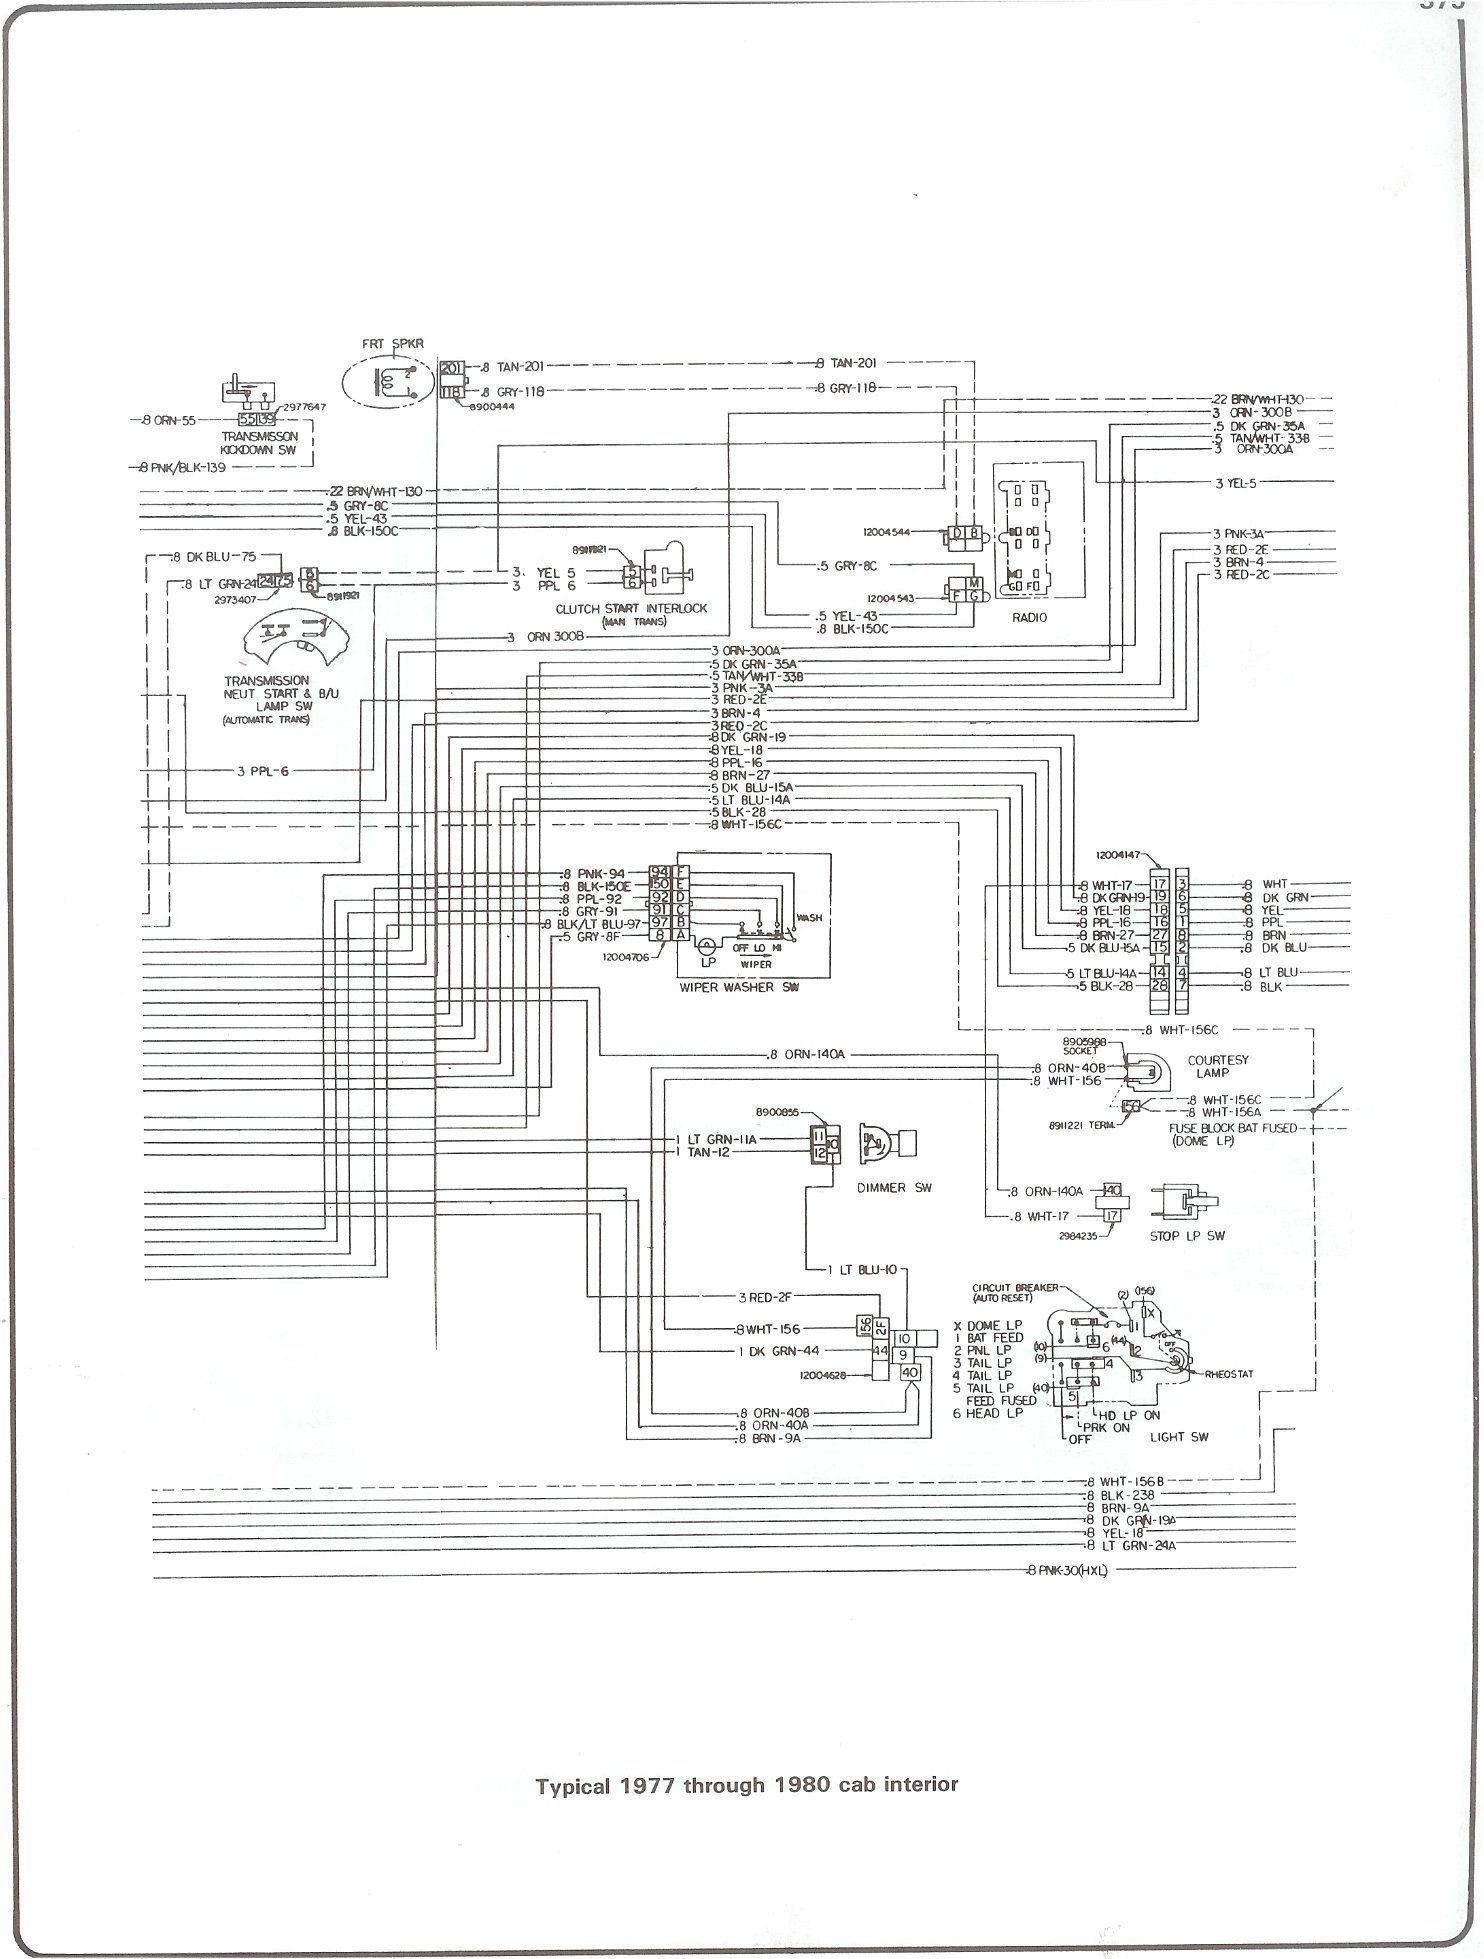 1978 Chevy Pickup Headlight Switch Wiring Diagram - Wiring Diagrams on 1970 camaro dimensions, 1970 camaro big block, 1970 camaro frame, 1970 camaro headlight, 1970 camaro wiper motor, 1970 camaro specification, 1970 camaro exploded view, 1970 camaro brochure, 1970 camaro voltage regulator, 1970 camaro door, 1970 camaro green, 1970 camaro exhaust system, 1970 camaro fuel pump, 1970 camaro super sport, 1970 camaro orange, 1970 camaro ss 350, 1970 camaro rear, 1970 camaro engine, 1970 camaro starter,